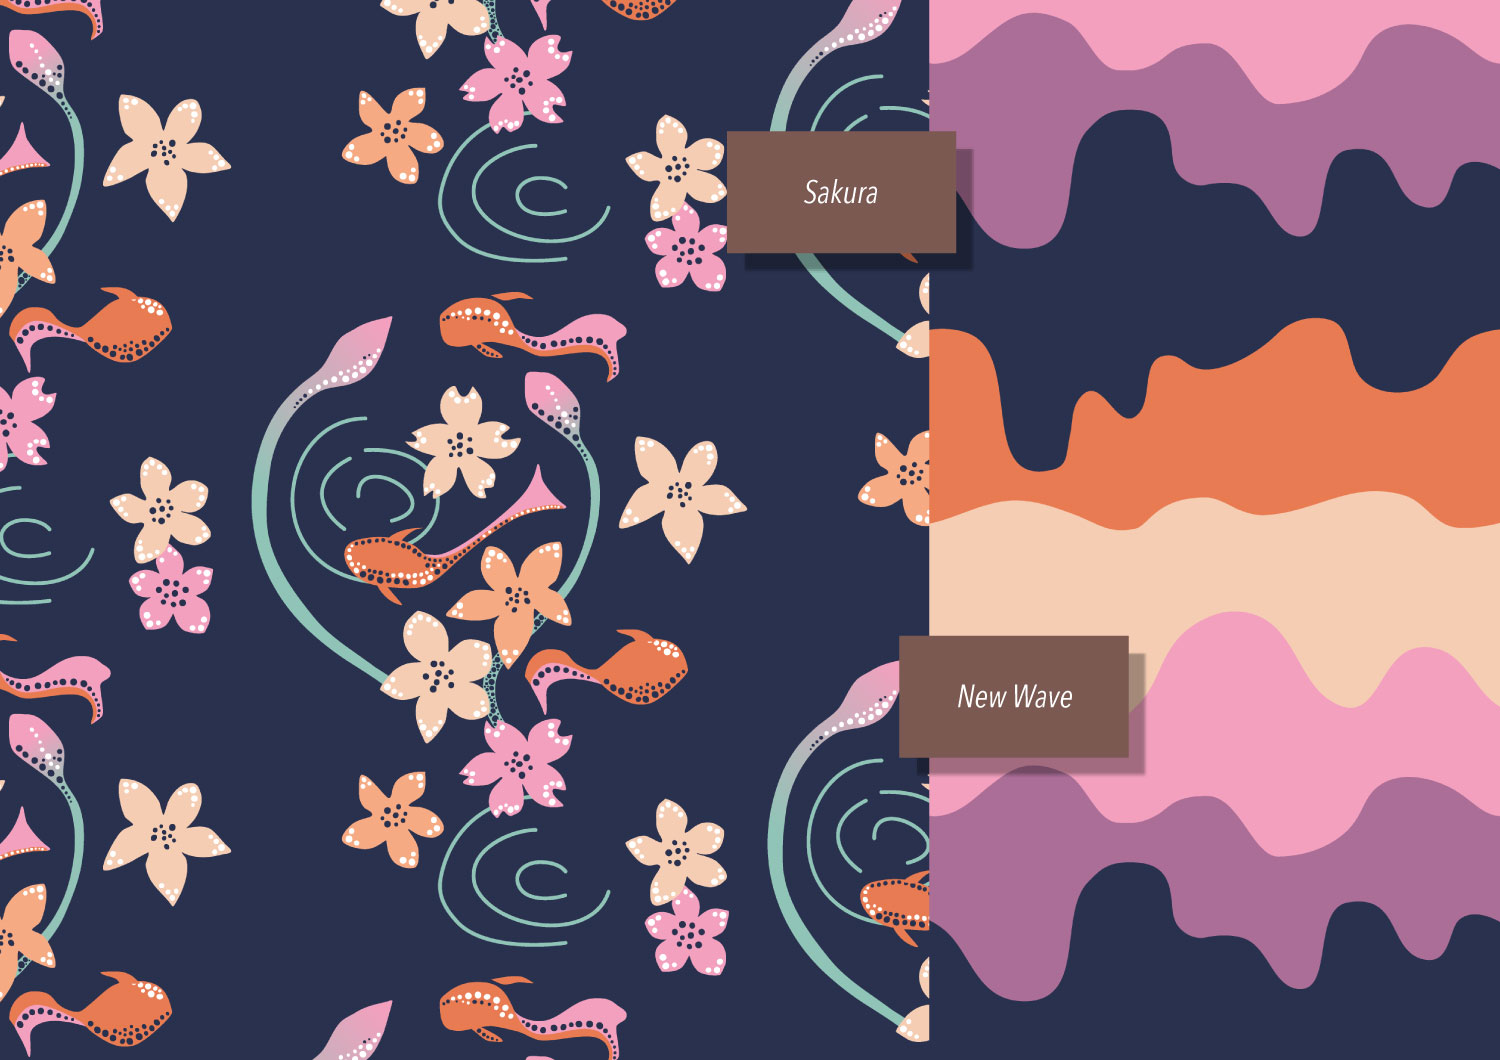 Patterns: Sakura Pond and New Wave